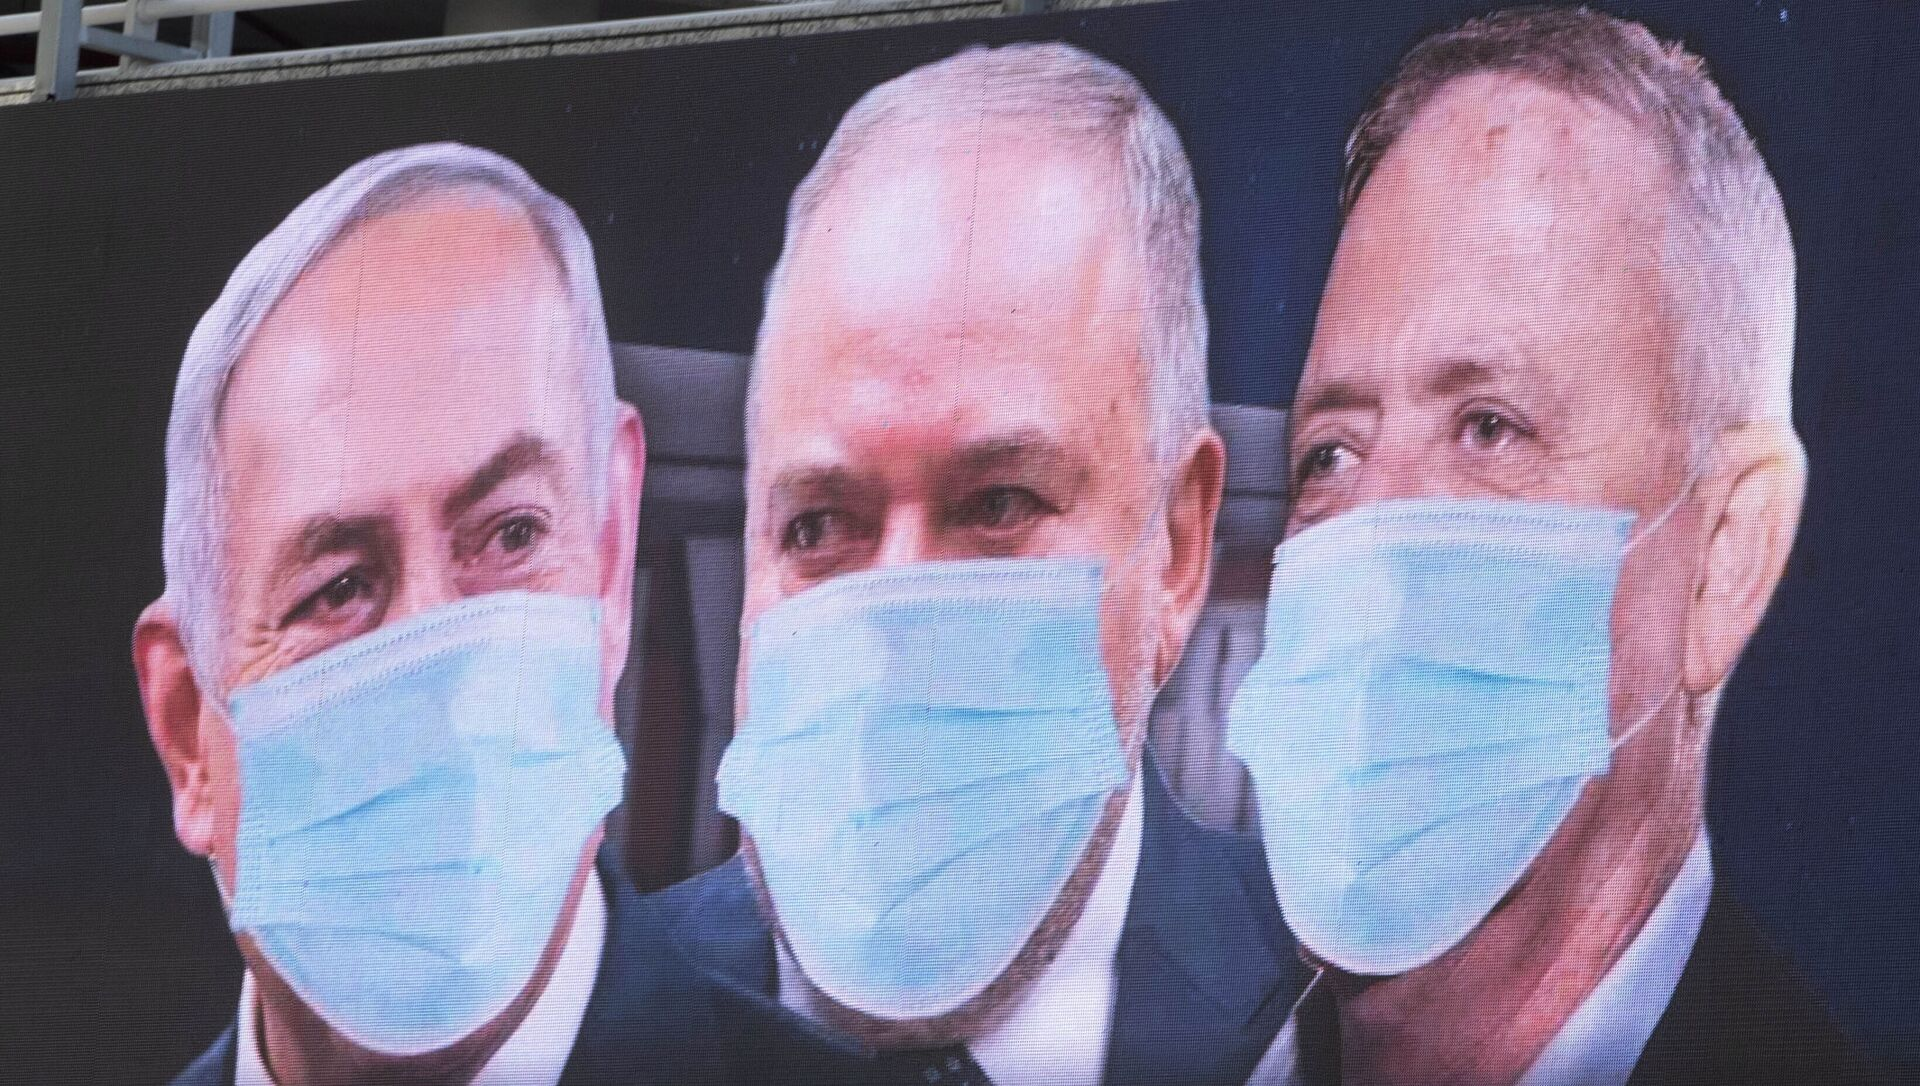 Israeli Prime Minister Benjamin Netanyahu, left, Israeli Former Defense Minister and leader of the Yisrael Beiteinu (Israel Our Home) right-wing party Avigdor Lieberman, center, and Blue and White party leader Benny Gantz, are shown on a billboard wearing masks in the Israeli city of Ramat Gan, near Tel Aviv, Sunday, March 29, 2020. - Sputnik Italia, 1920, 04.04.2021